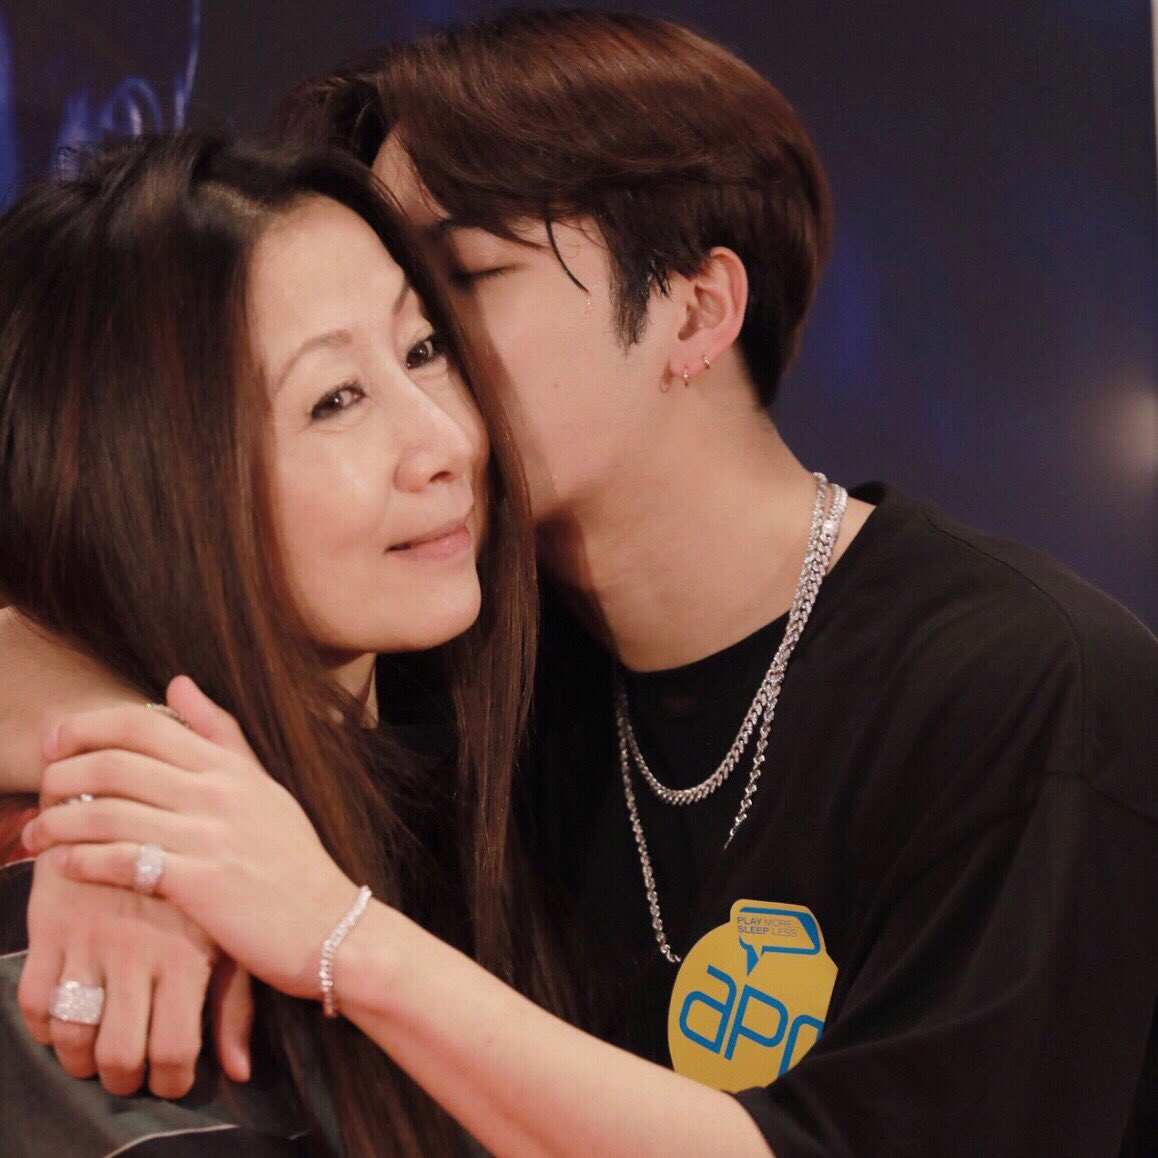 Jackson, a family guy and a loving son who loves his parents so much. Let's uwu and stan Jackson Wang  <br>http://pic.twitter.com/1CVXOQbfU3